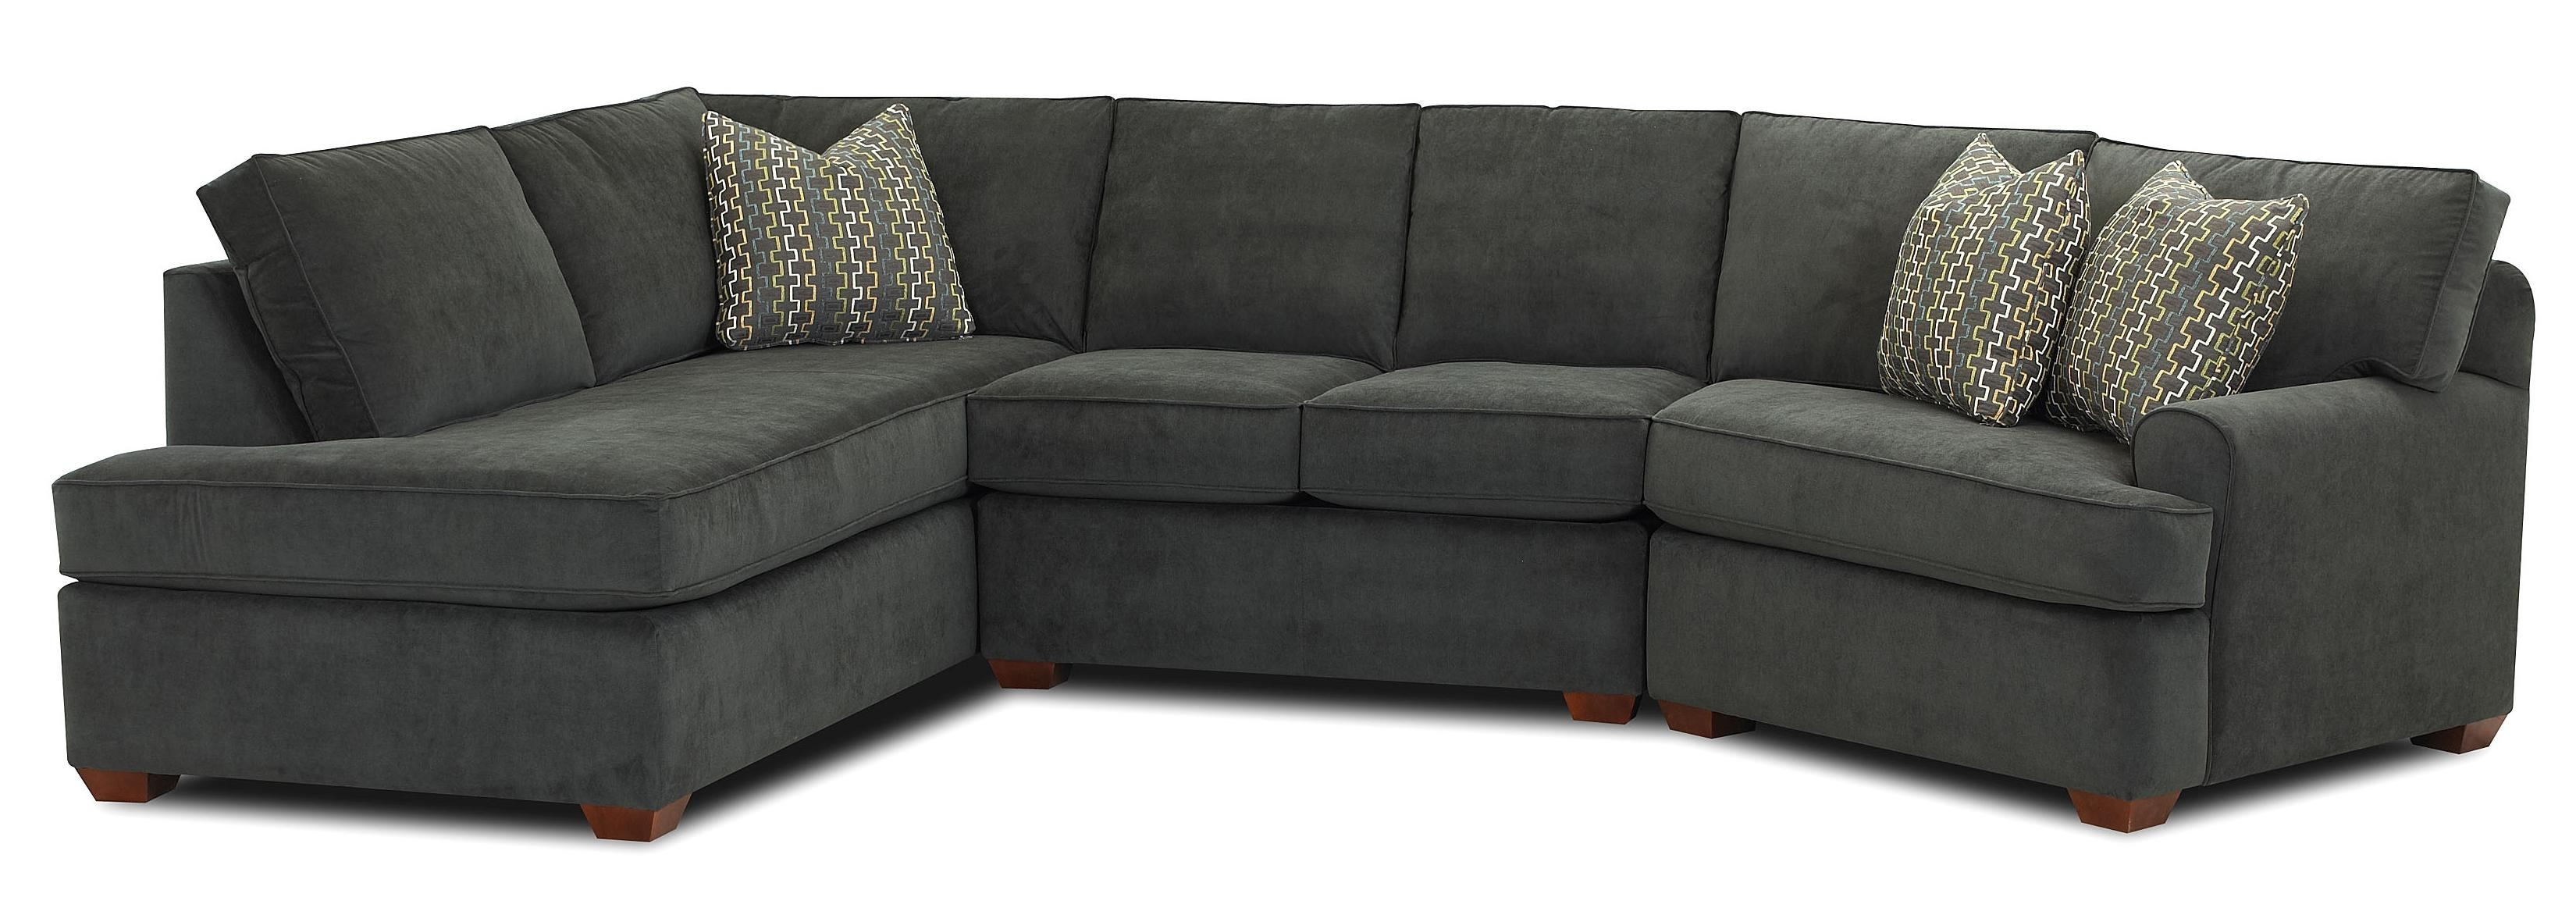 Sectional Sofa With Left Facing Sofa Chaise | Redecoration Project Intended For Nova Scotia Sectional Sofas (Image 8 of 10)